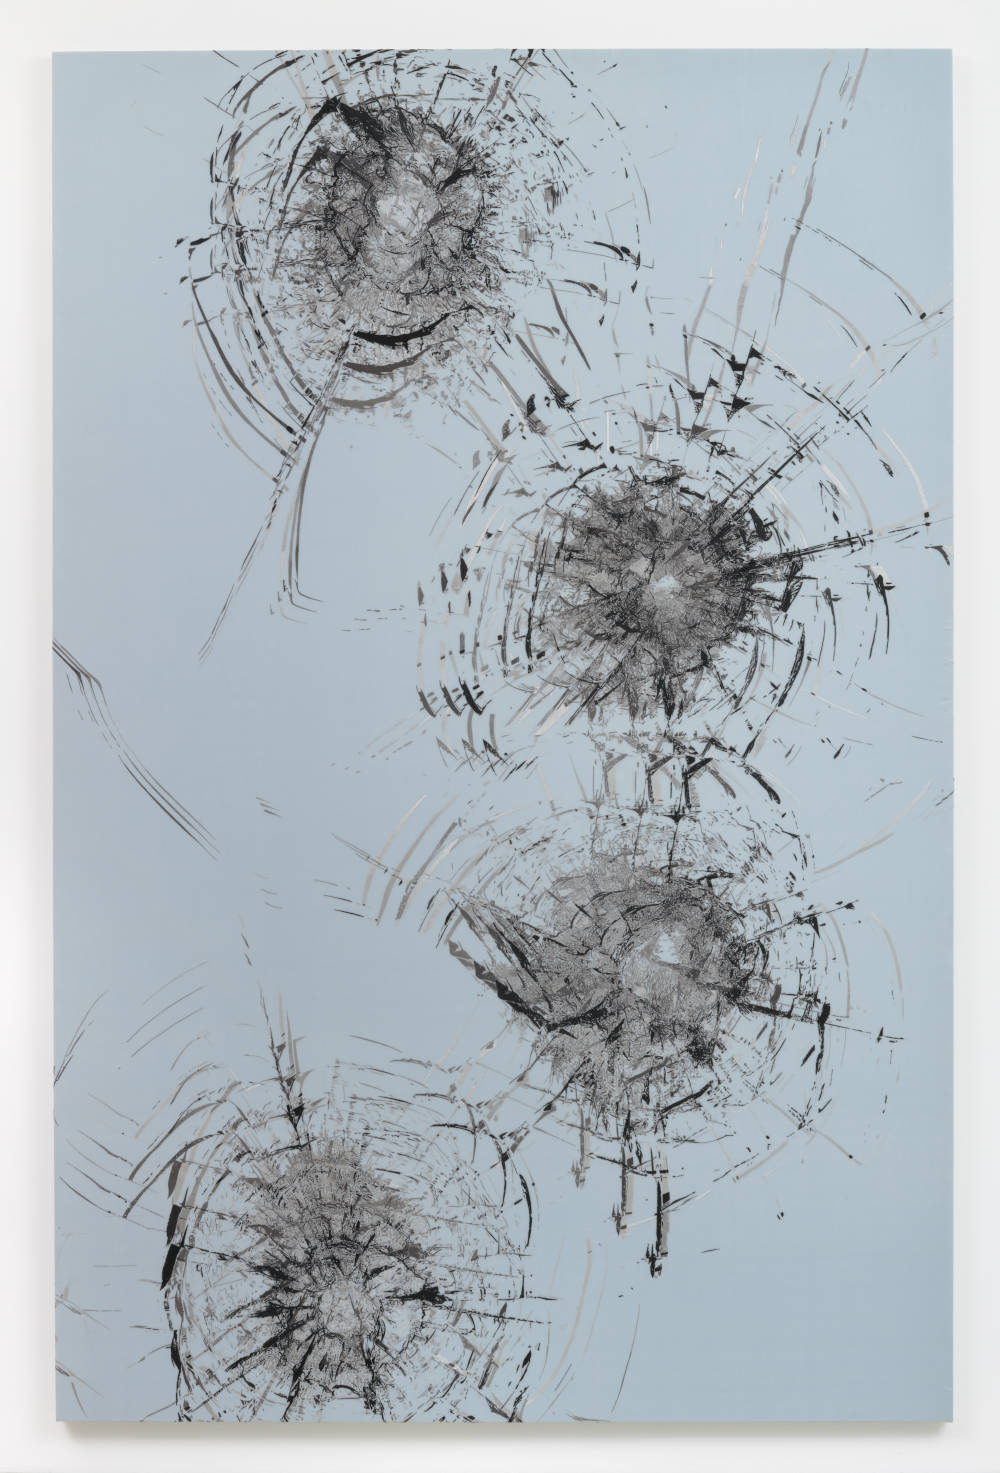 Zhao Zhao, Constellation 5, 2019. Embroidery on silk 117.32 x 77.16 inches (298 x 196 cm) Courtesy of the artist and Roberts Projects, Los Angeles, California